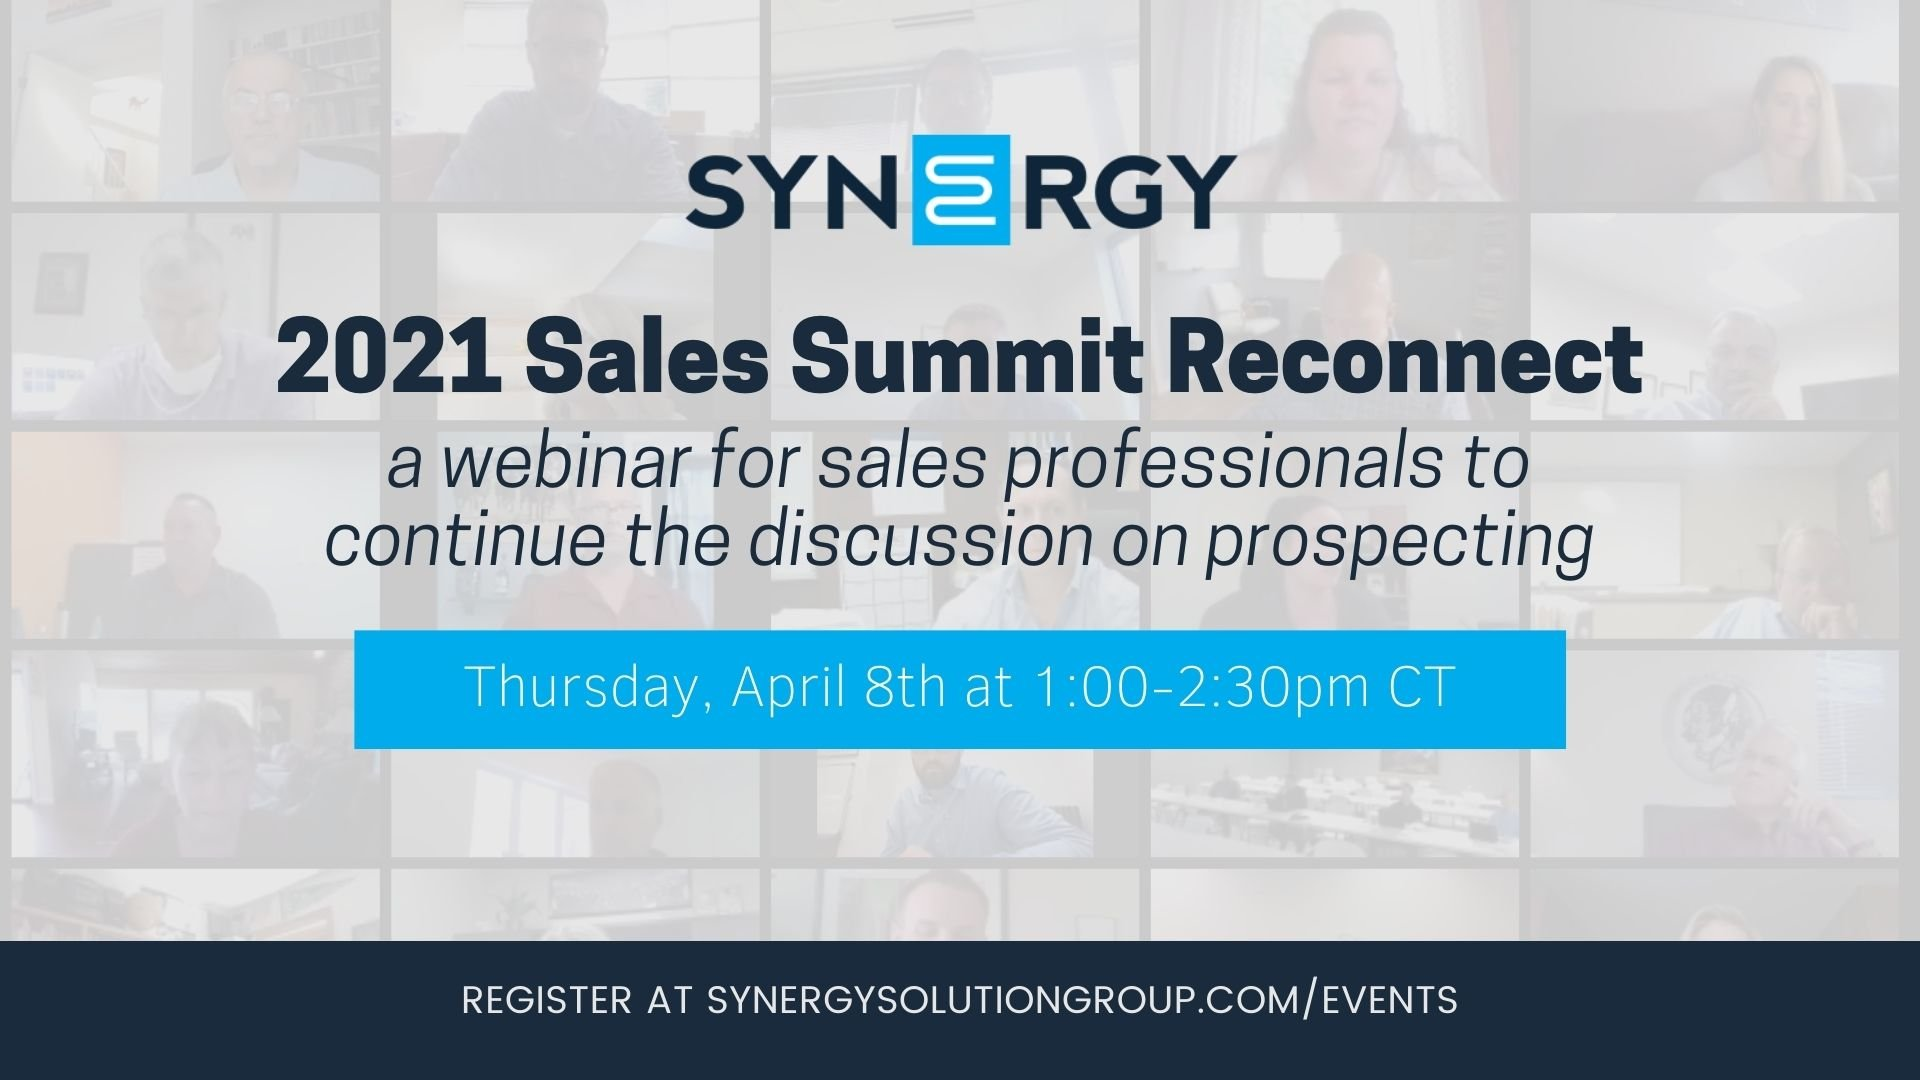 Synergy to Host 2021 Sales Summit Reconnect